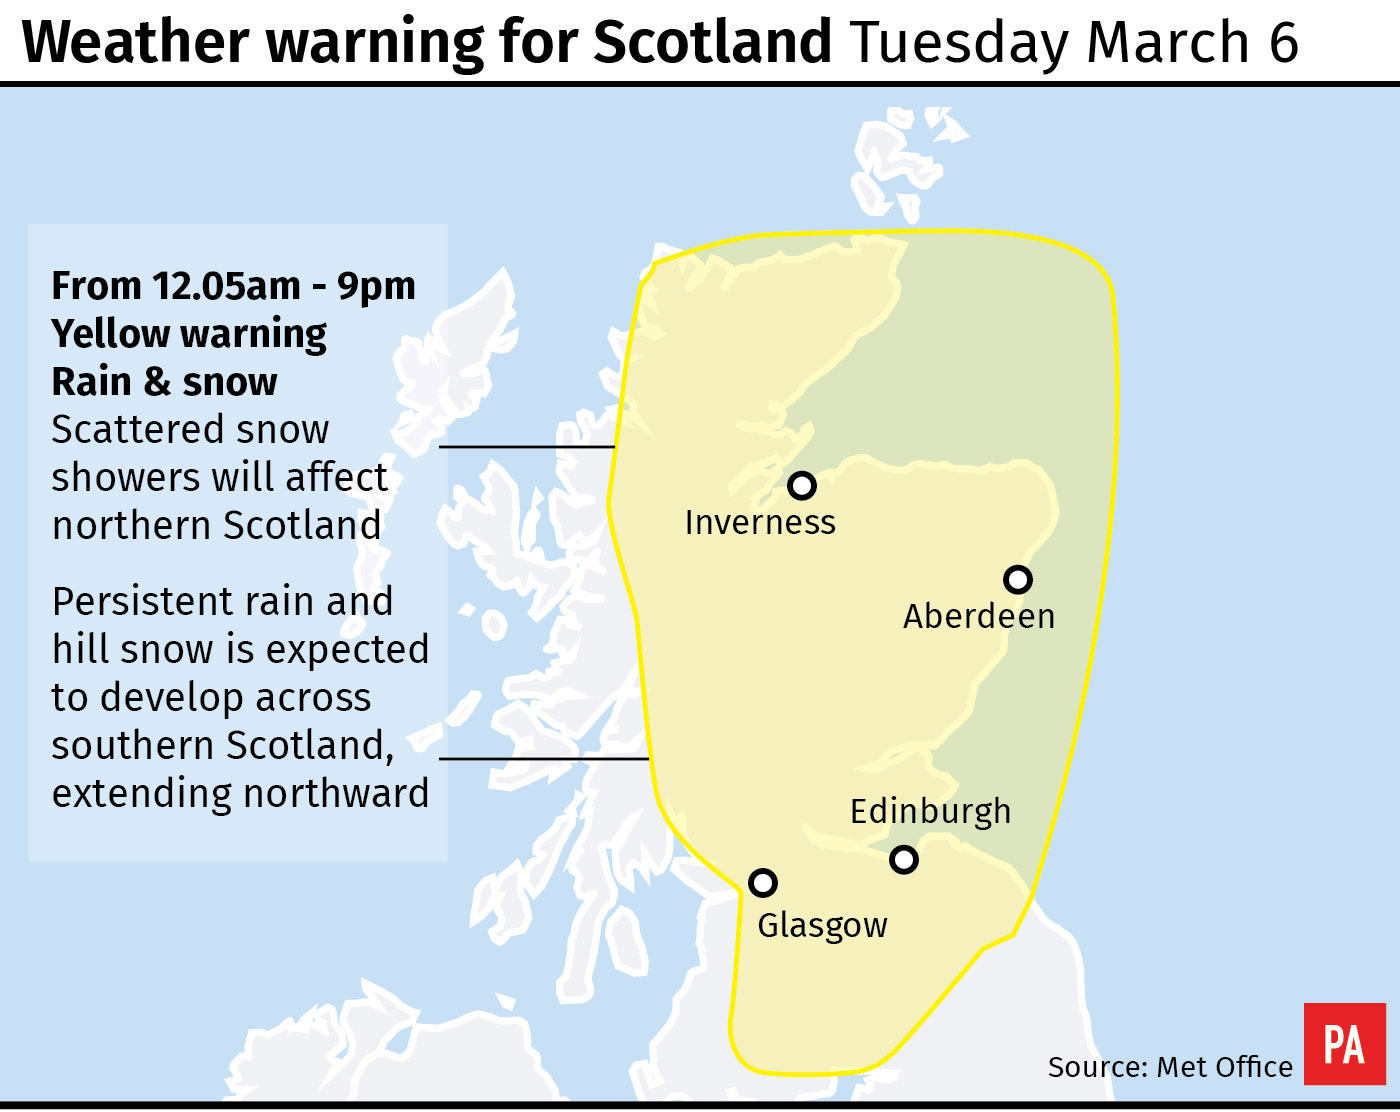 Weather warning for Scotland Tuesday March 6. (PA Graphics)